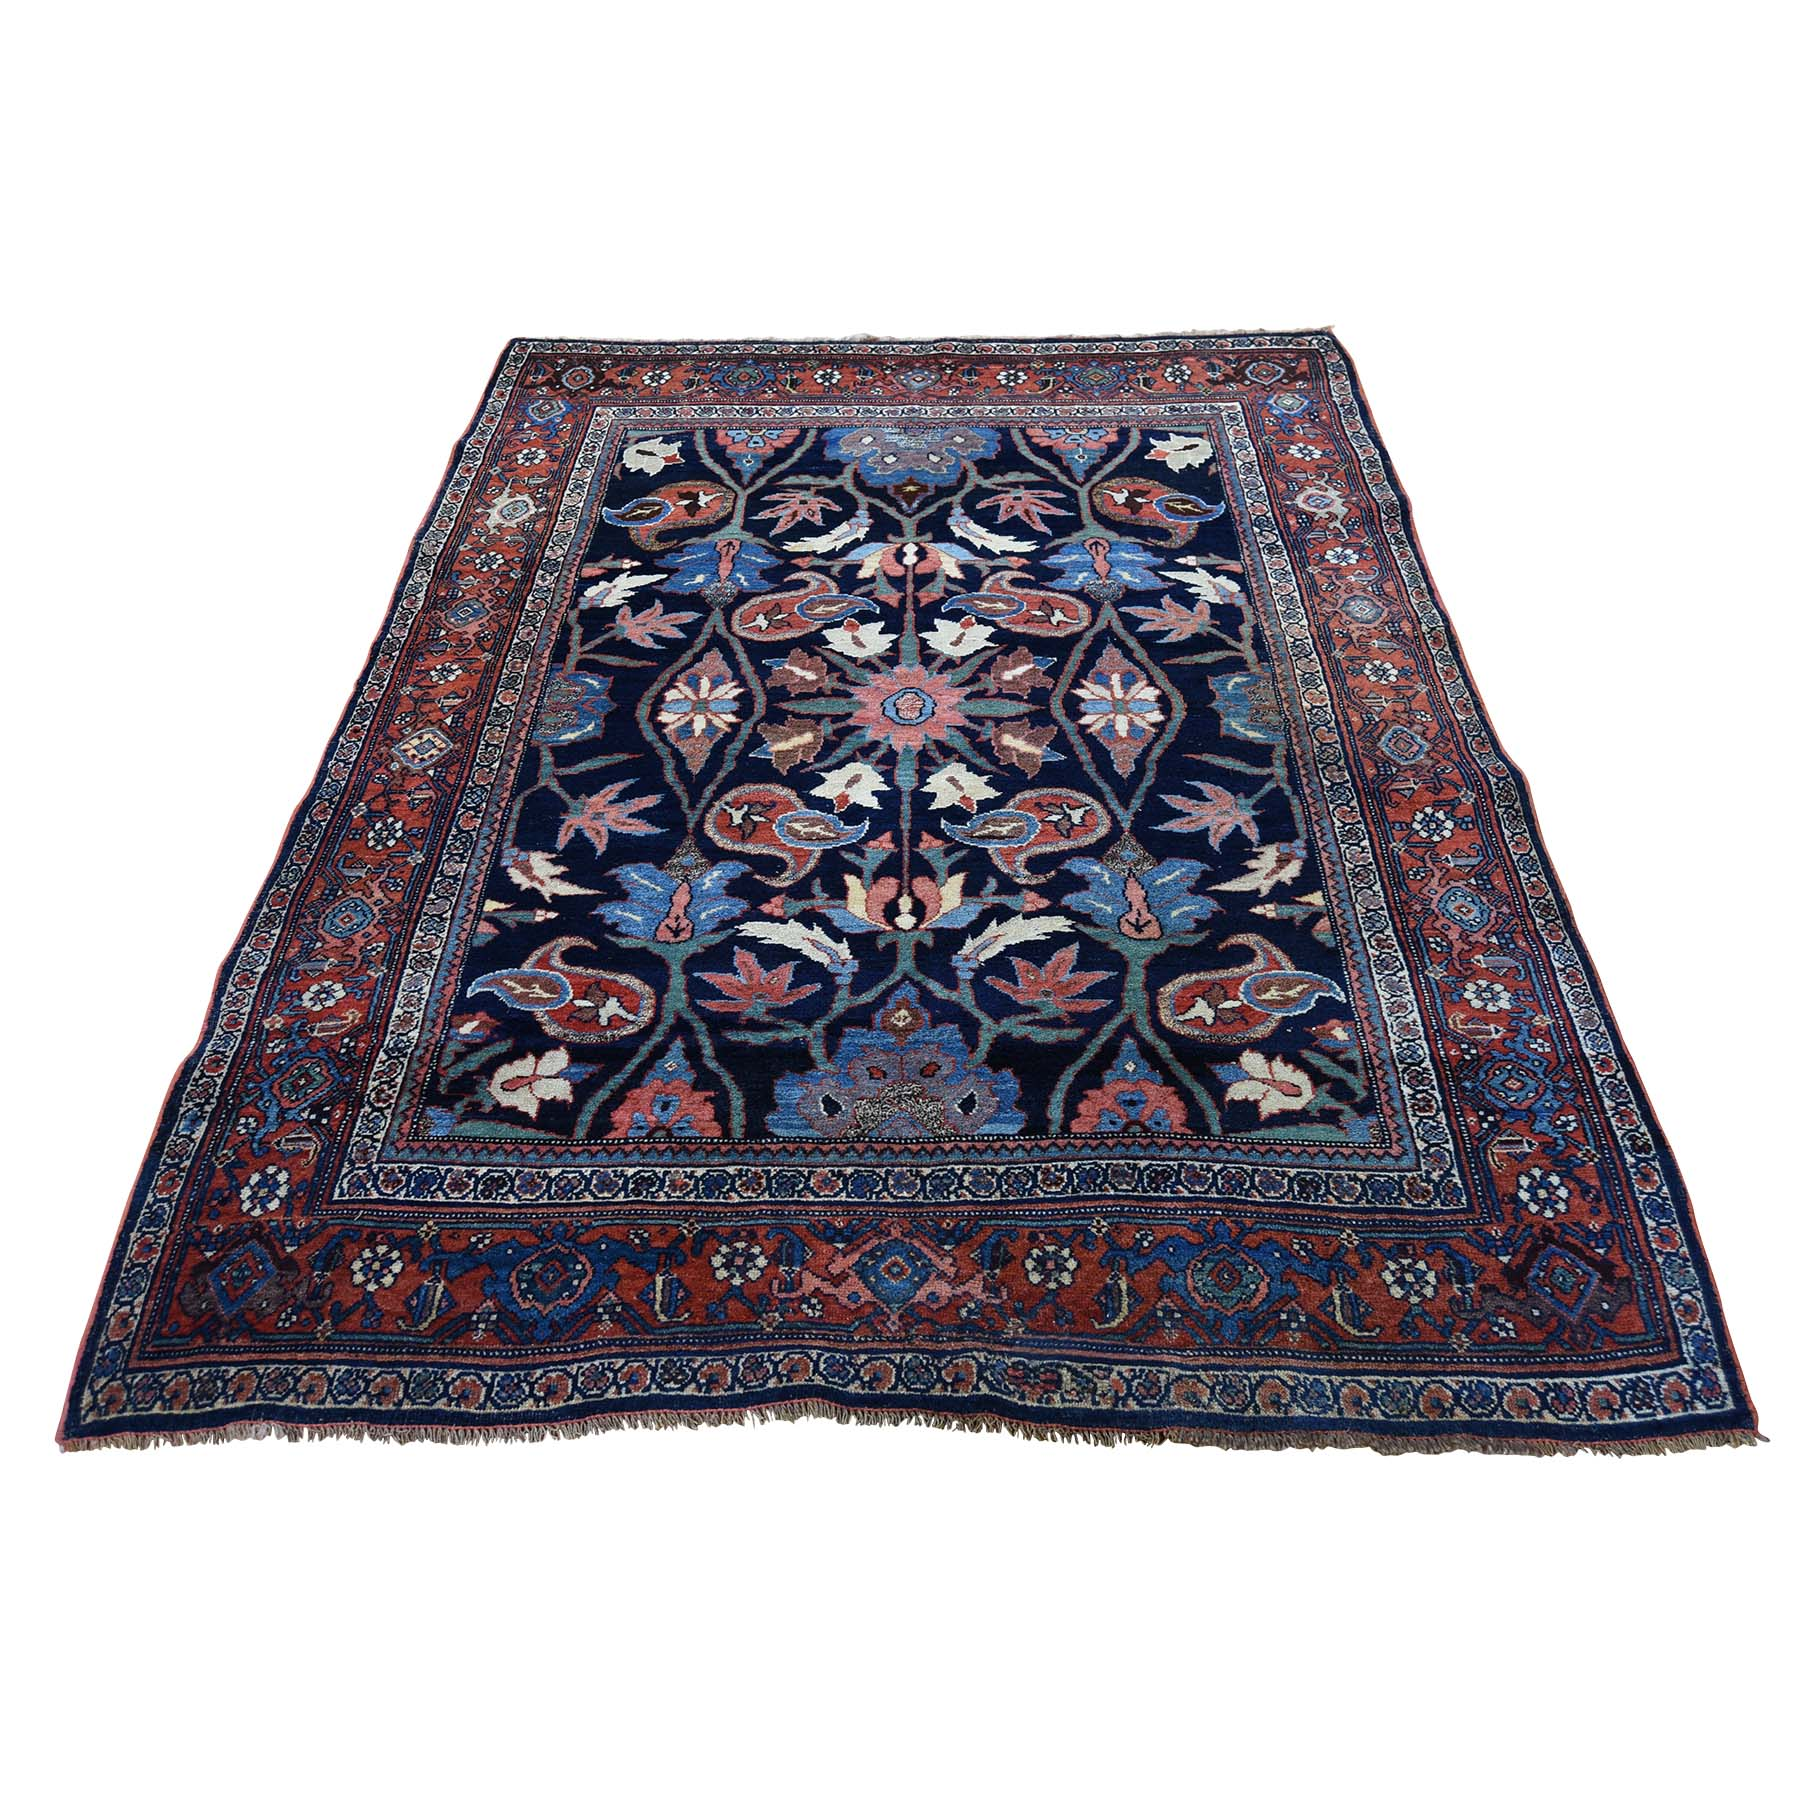 "4'6""X6'6"" Antique Persian Bijar Pure Wool Exc Condition Full Pile Hand-Knotted Oriental Rug moadcc9a"